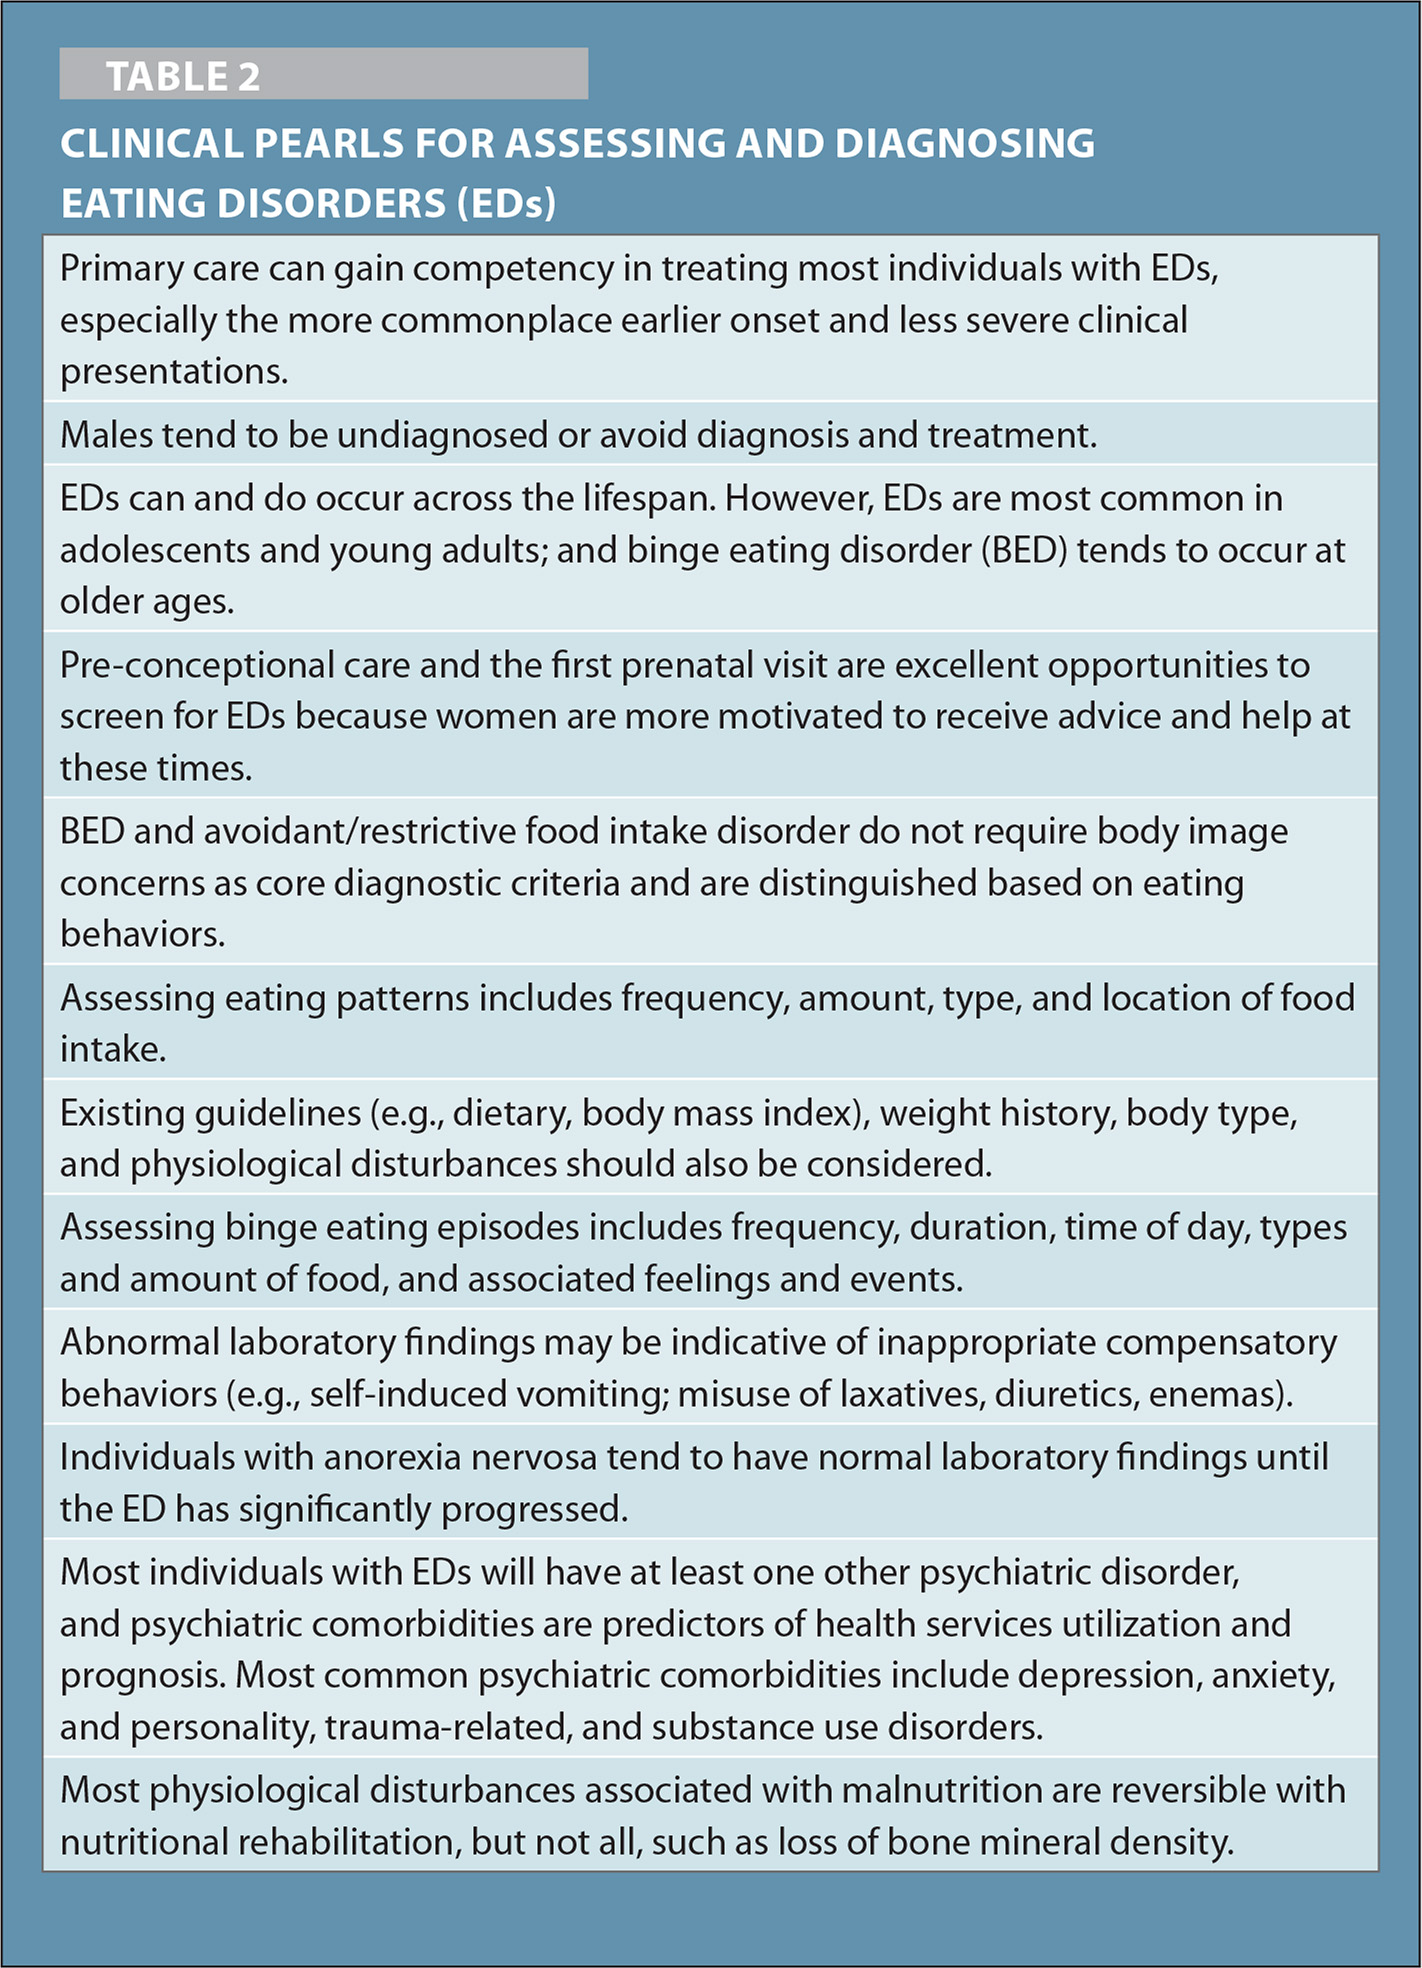 Clinical Pearls for Assessing and Diagnosing Eating Disorders (EDs)